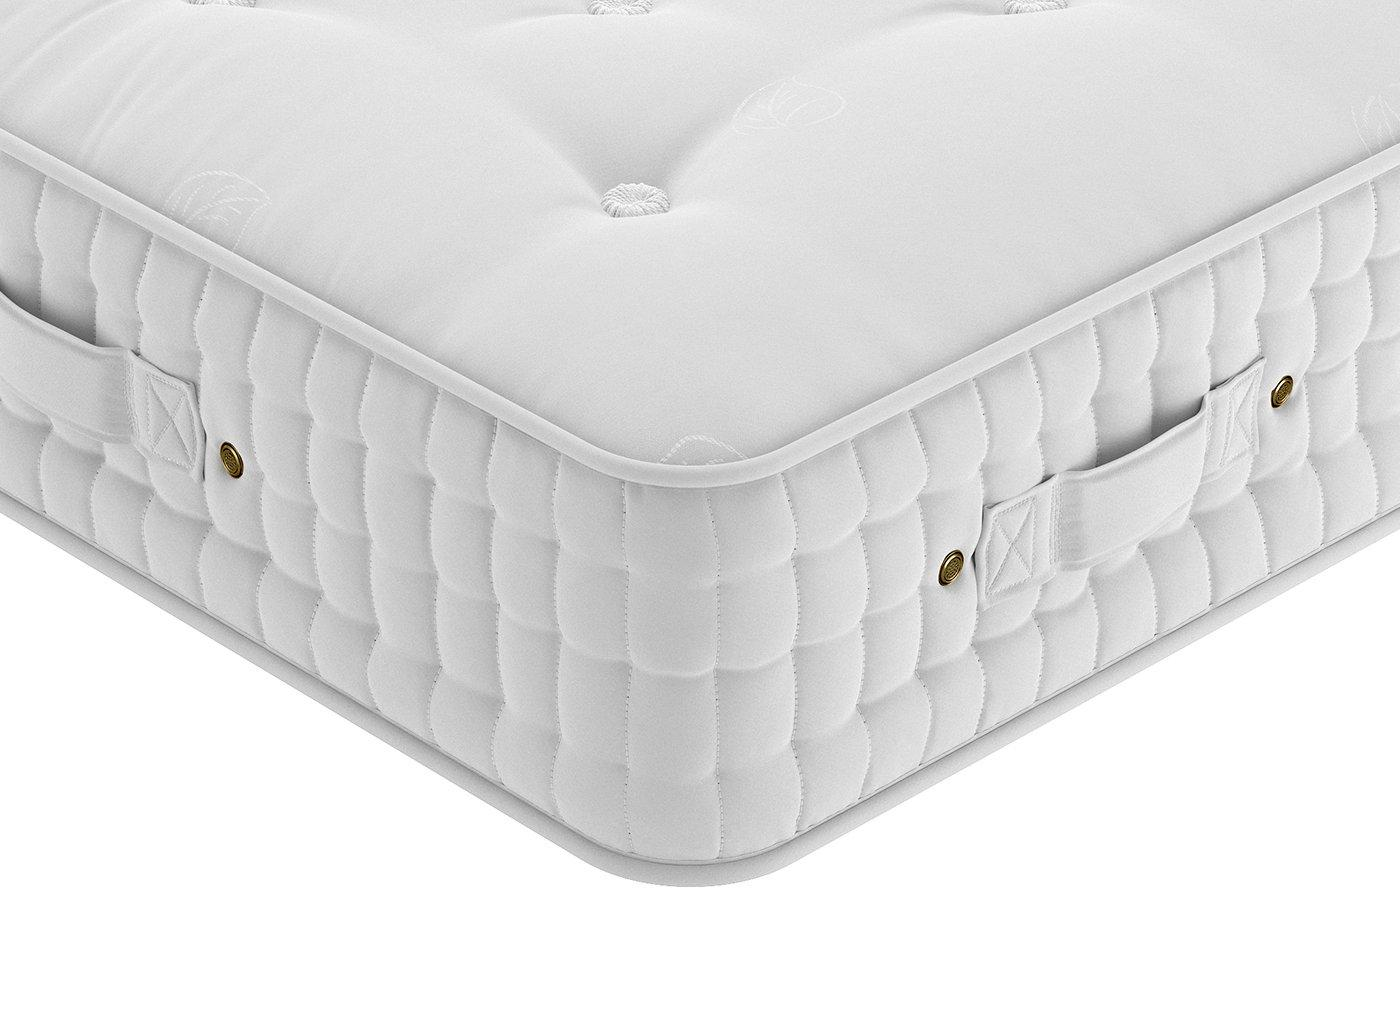 Flaxby Nature's Finest 13400 Dual Season Mattress (£1,799)